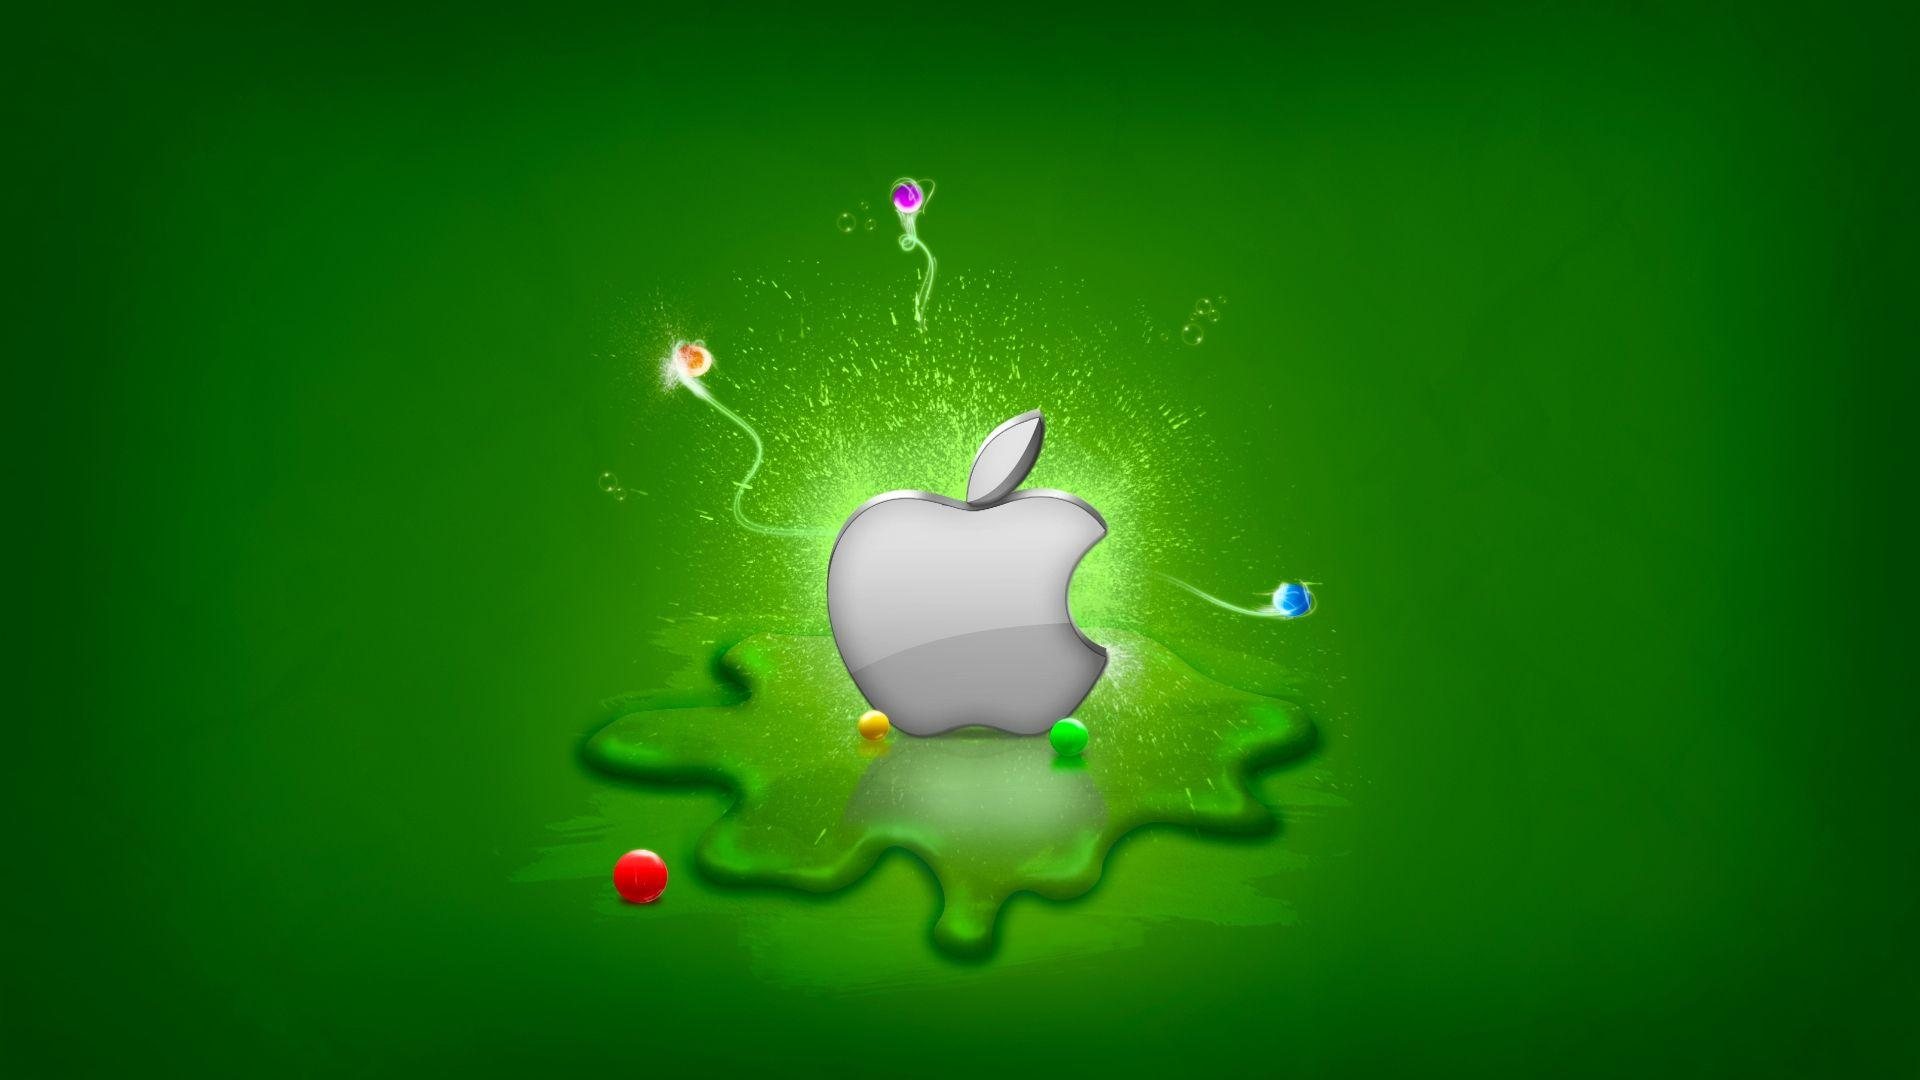 Apple logo hd wallpapers wallpaper cave for Immagini apple hd